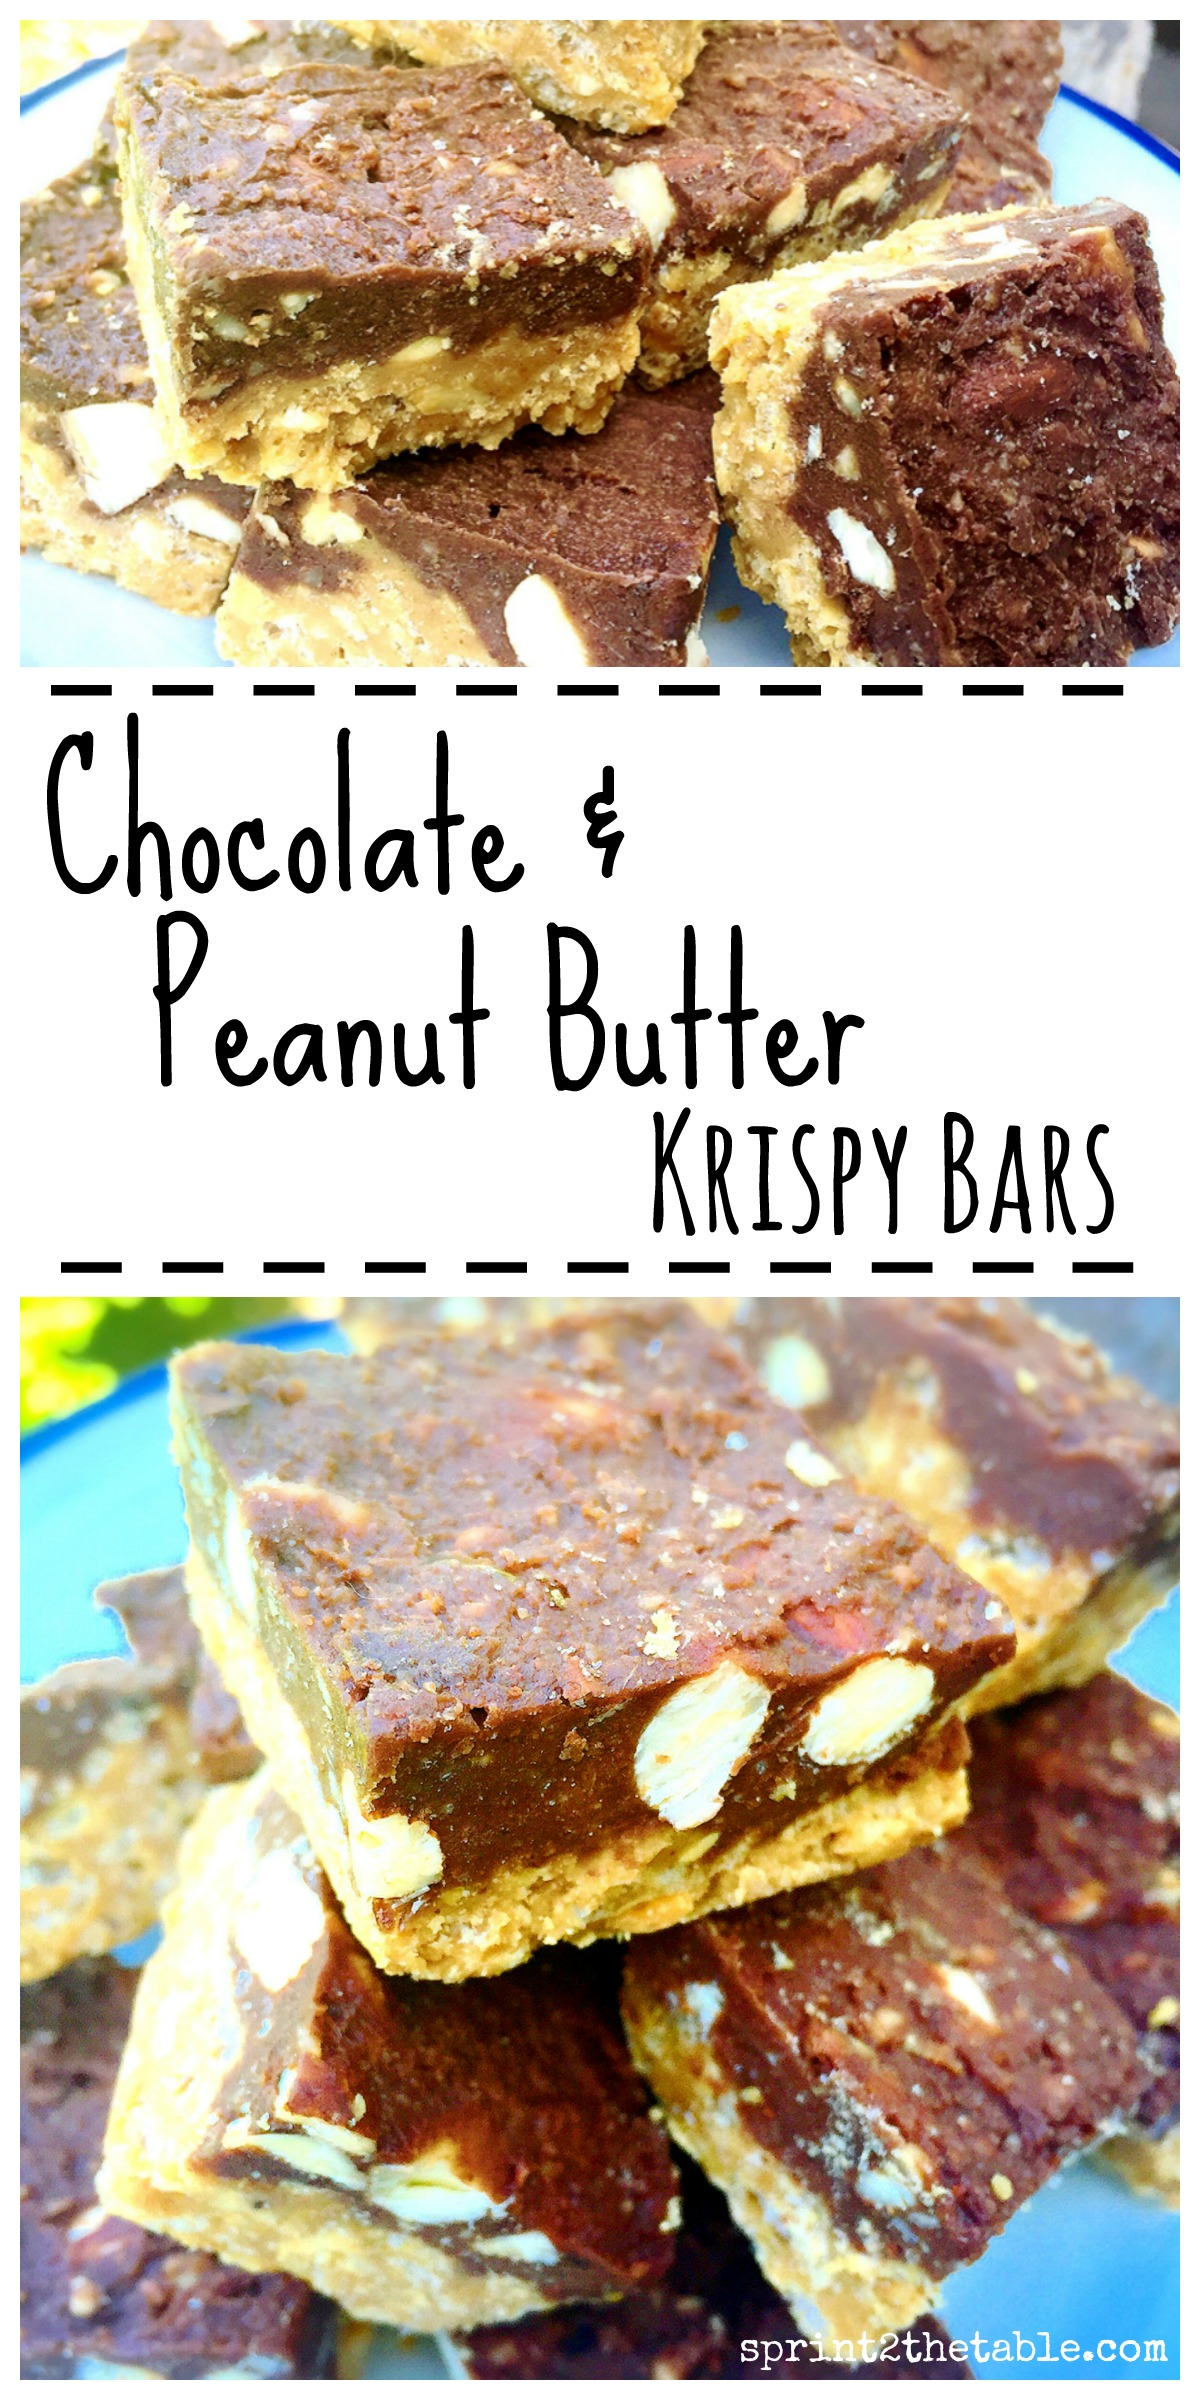 Chocolate & Peanut Butter Squares - it's like if Reeses and Crunch bars had a healthier baby.